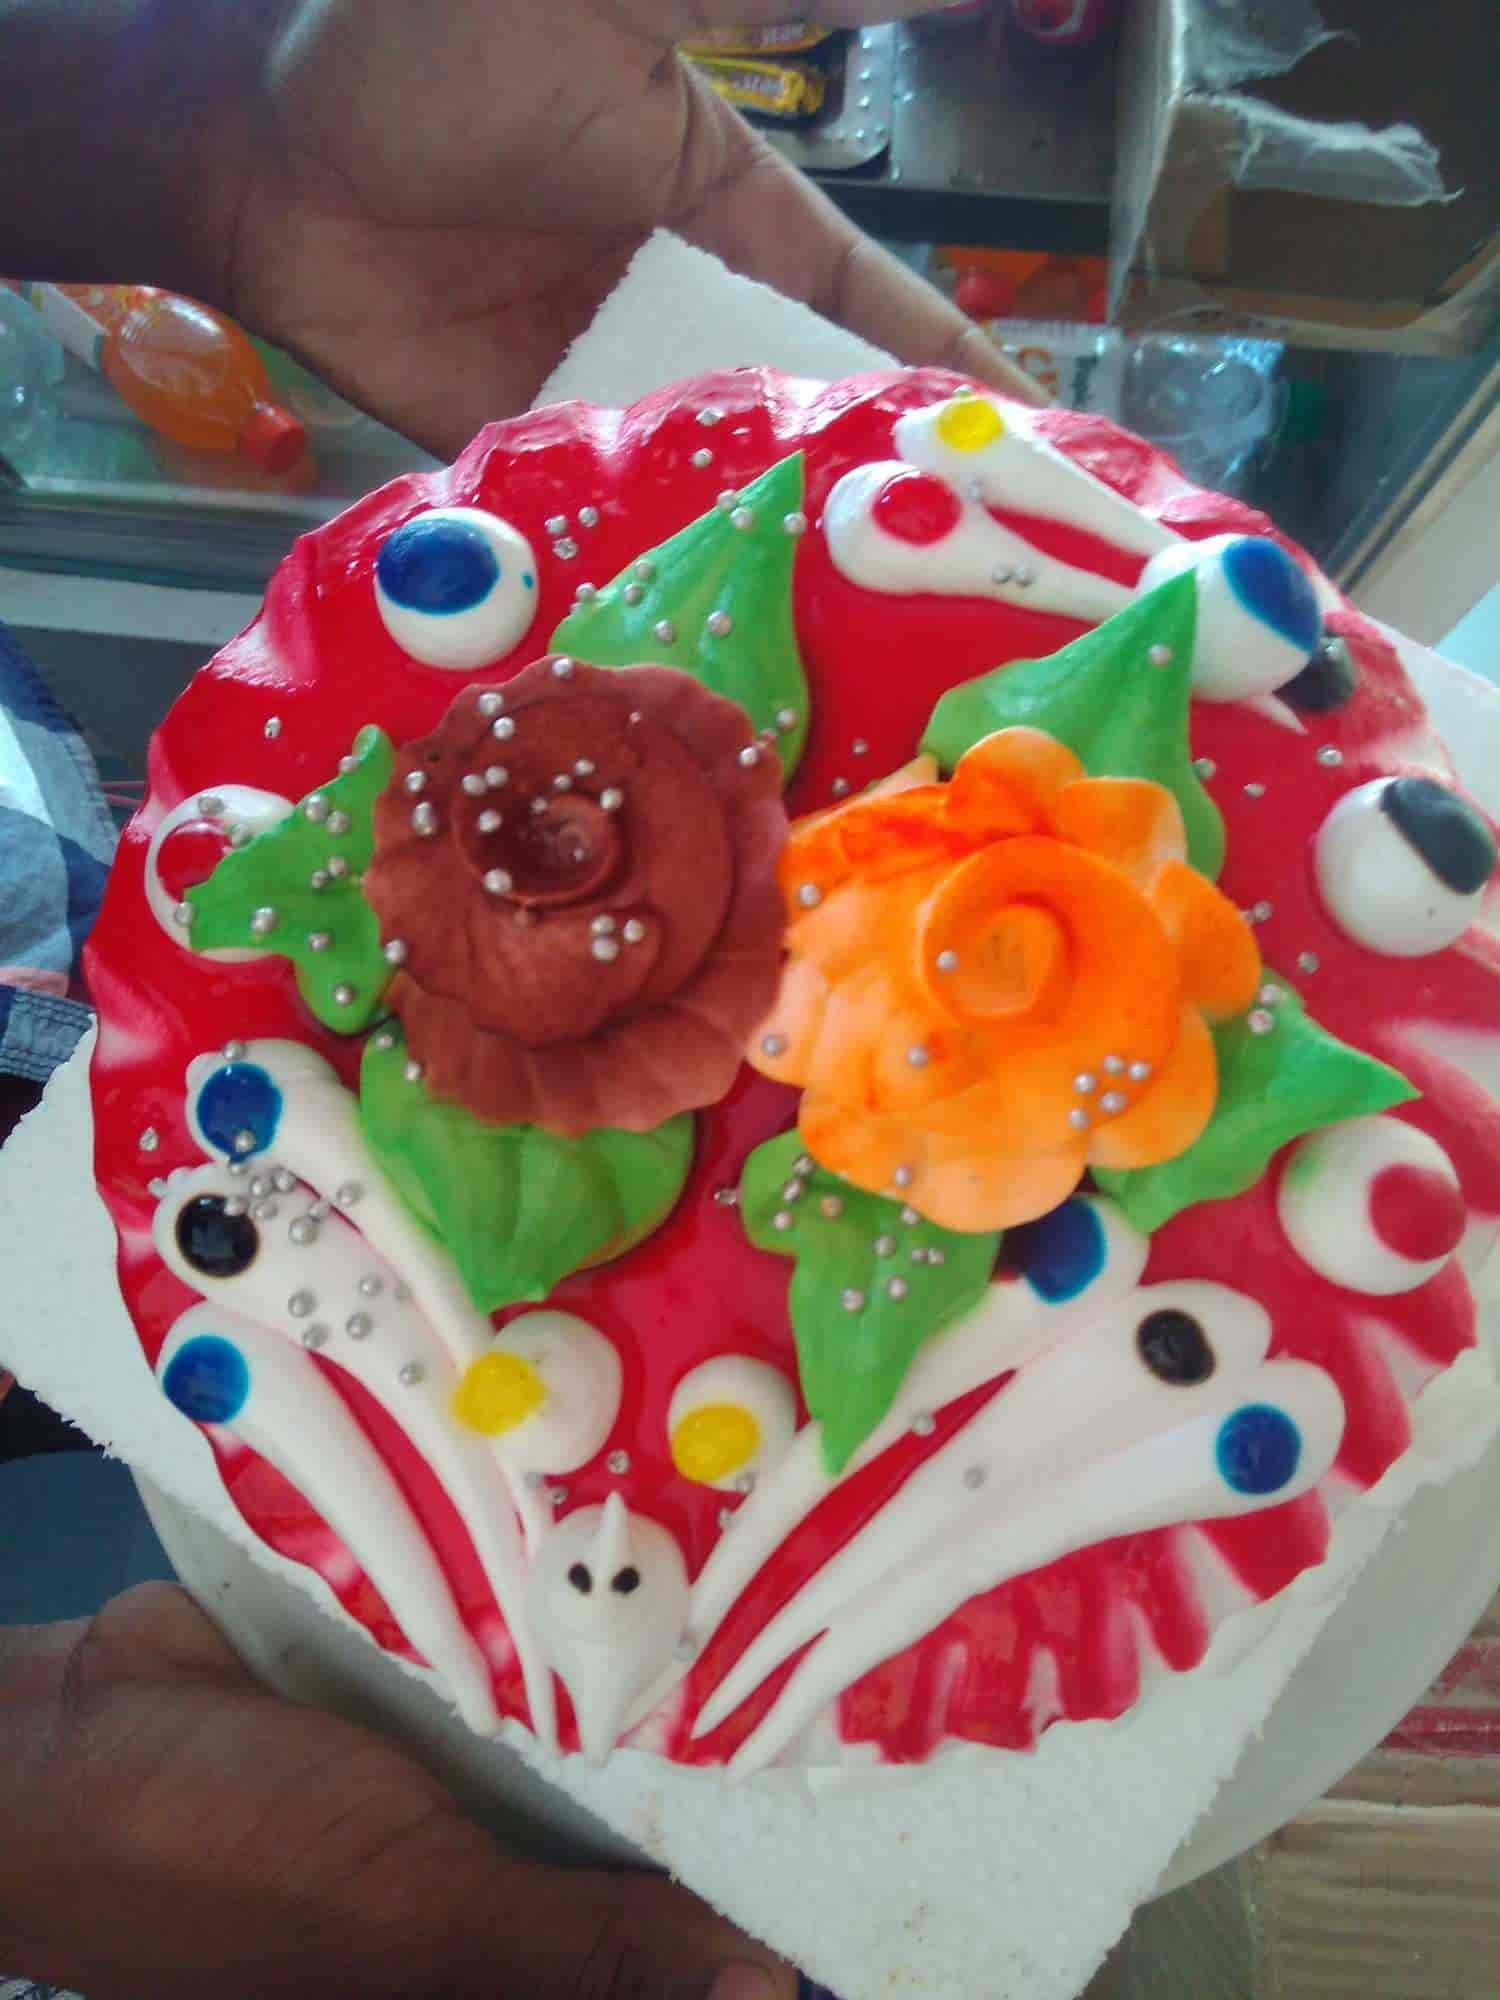 Bake My Cake Photos Railway Station Jhansi Pictures Images